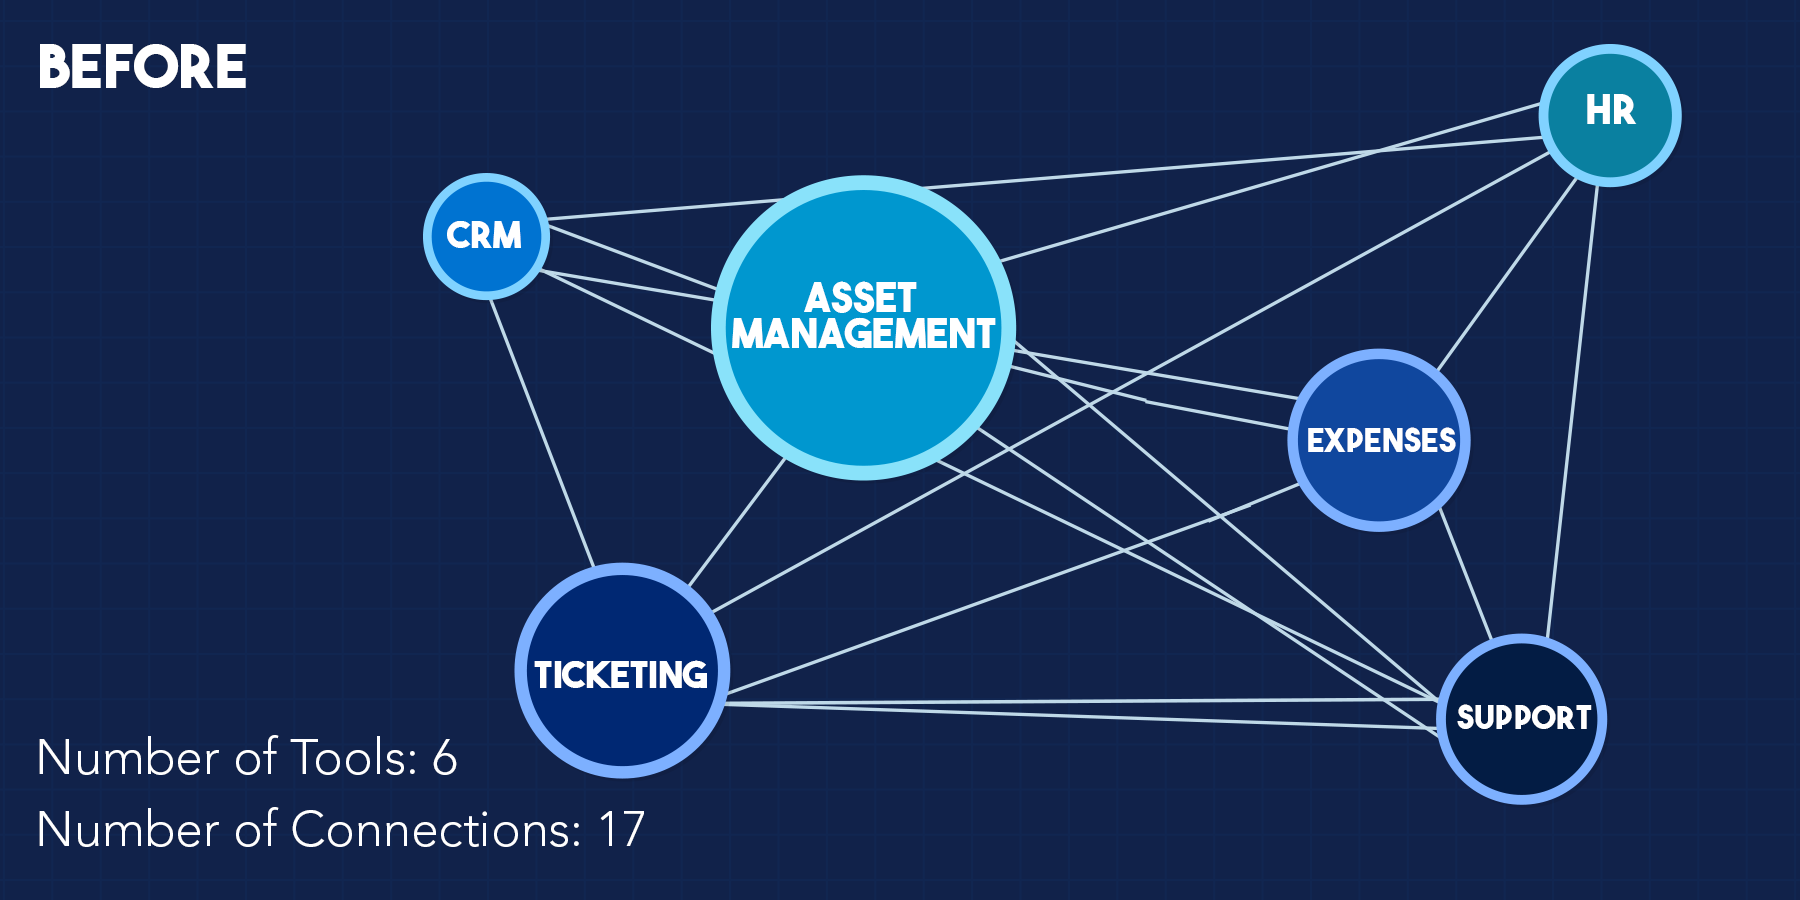 What integration was like before Salesforce's integration of Mulesoft?